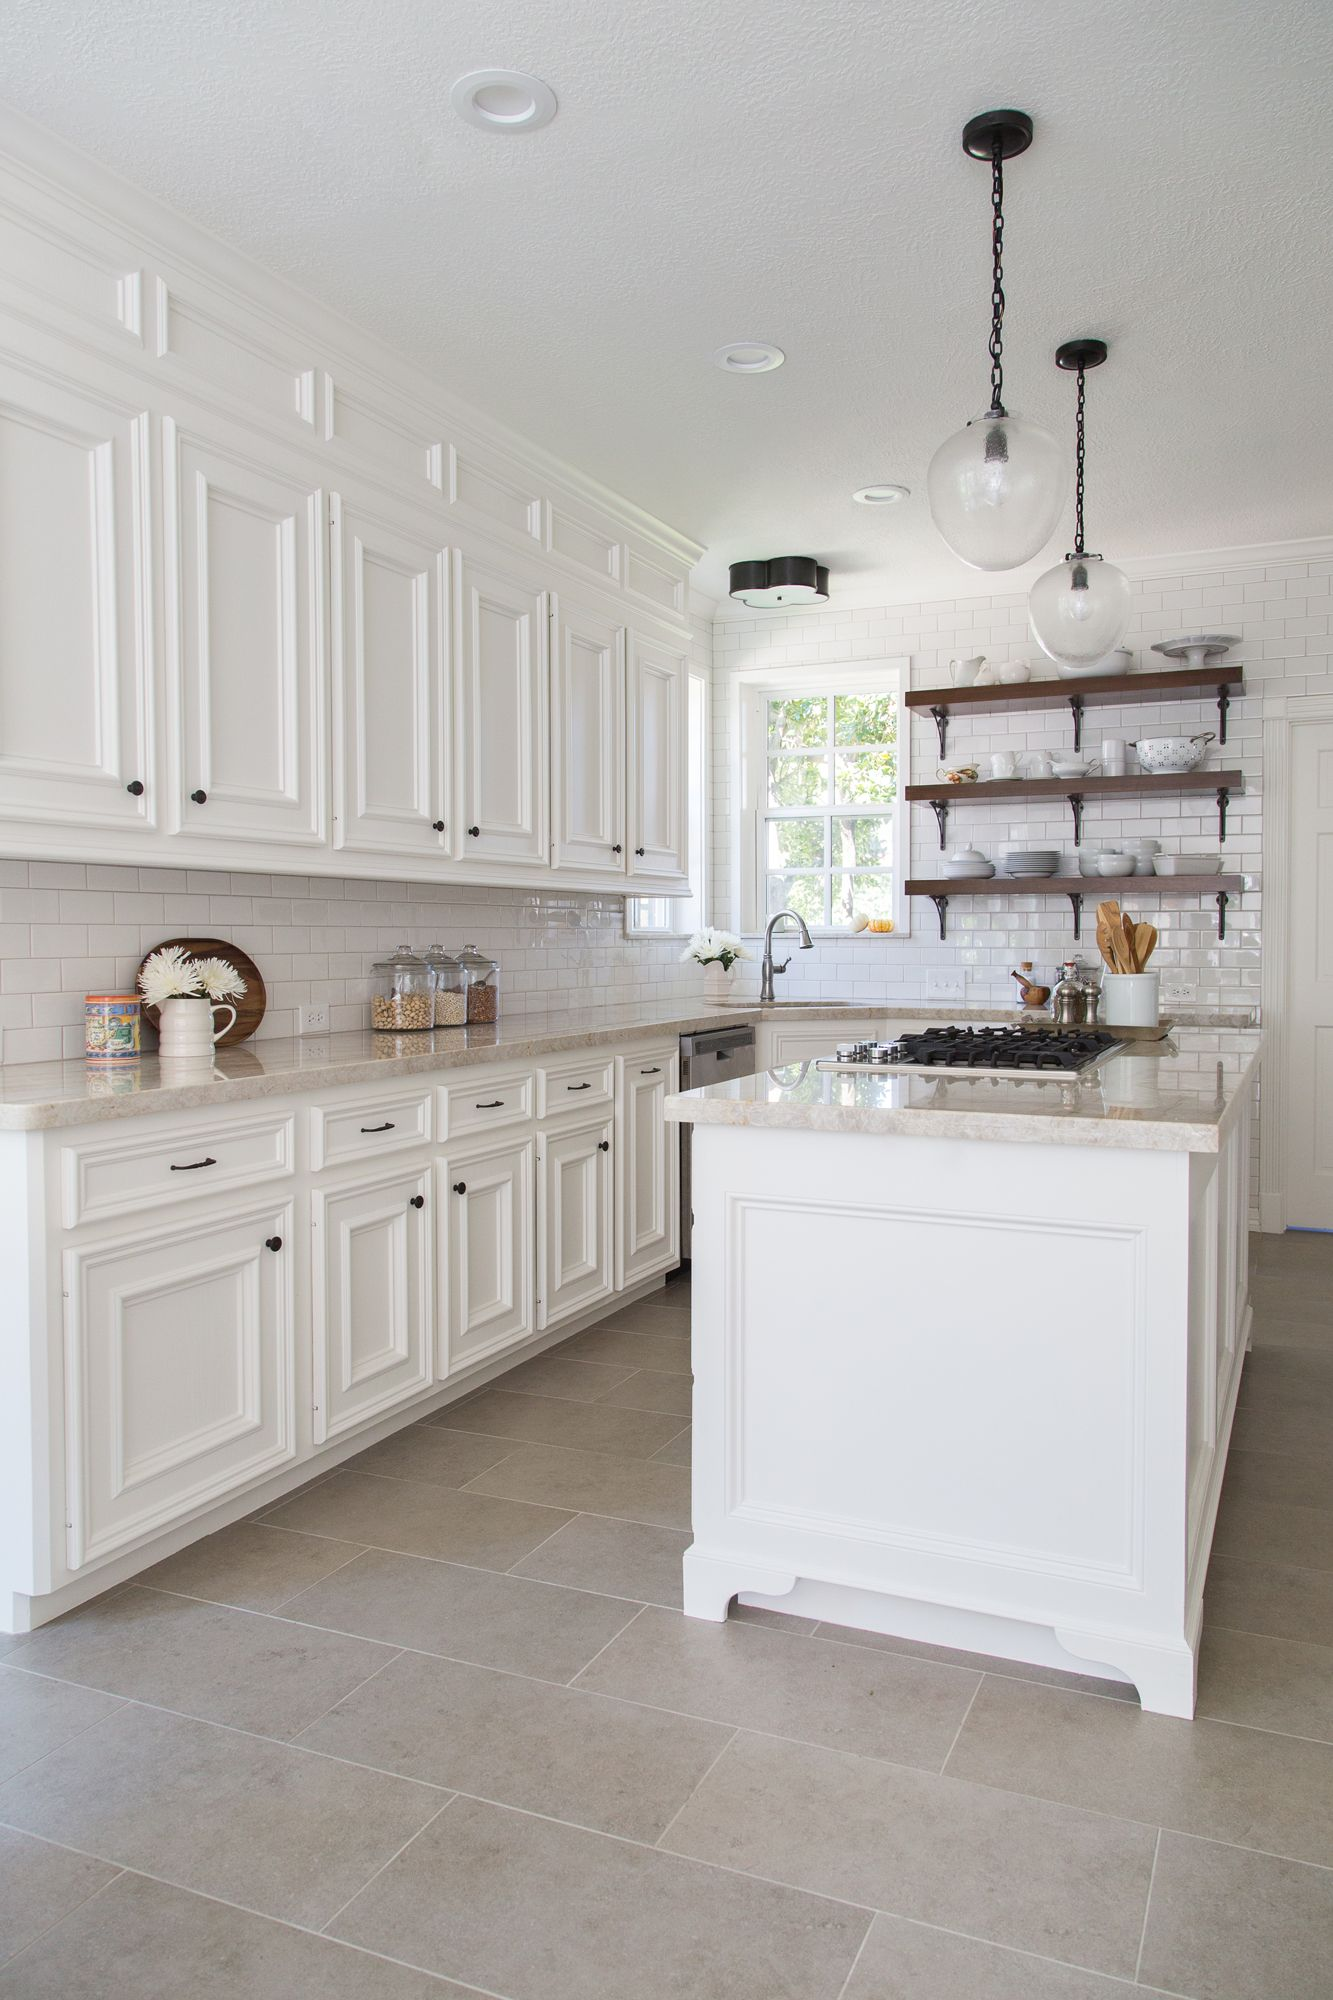 Before after a dark dismal kitchen is made light and bright farmhouse kitchen remodel interior designer carla aston photographer tori aston tile kitchen floorskitchen dailygadgetfo Images